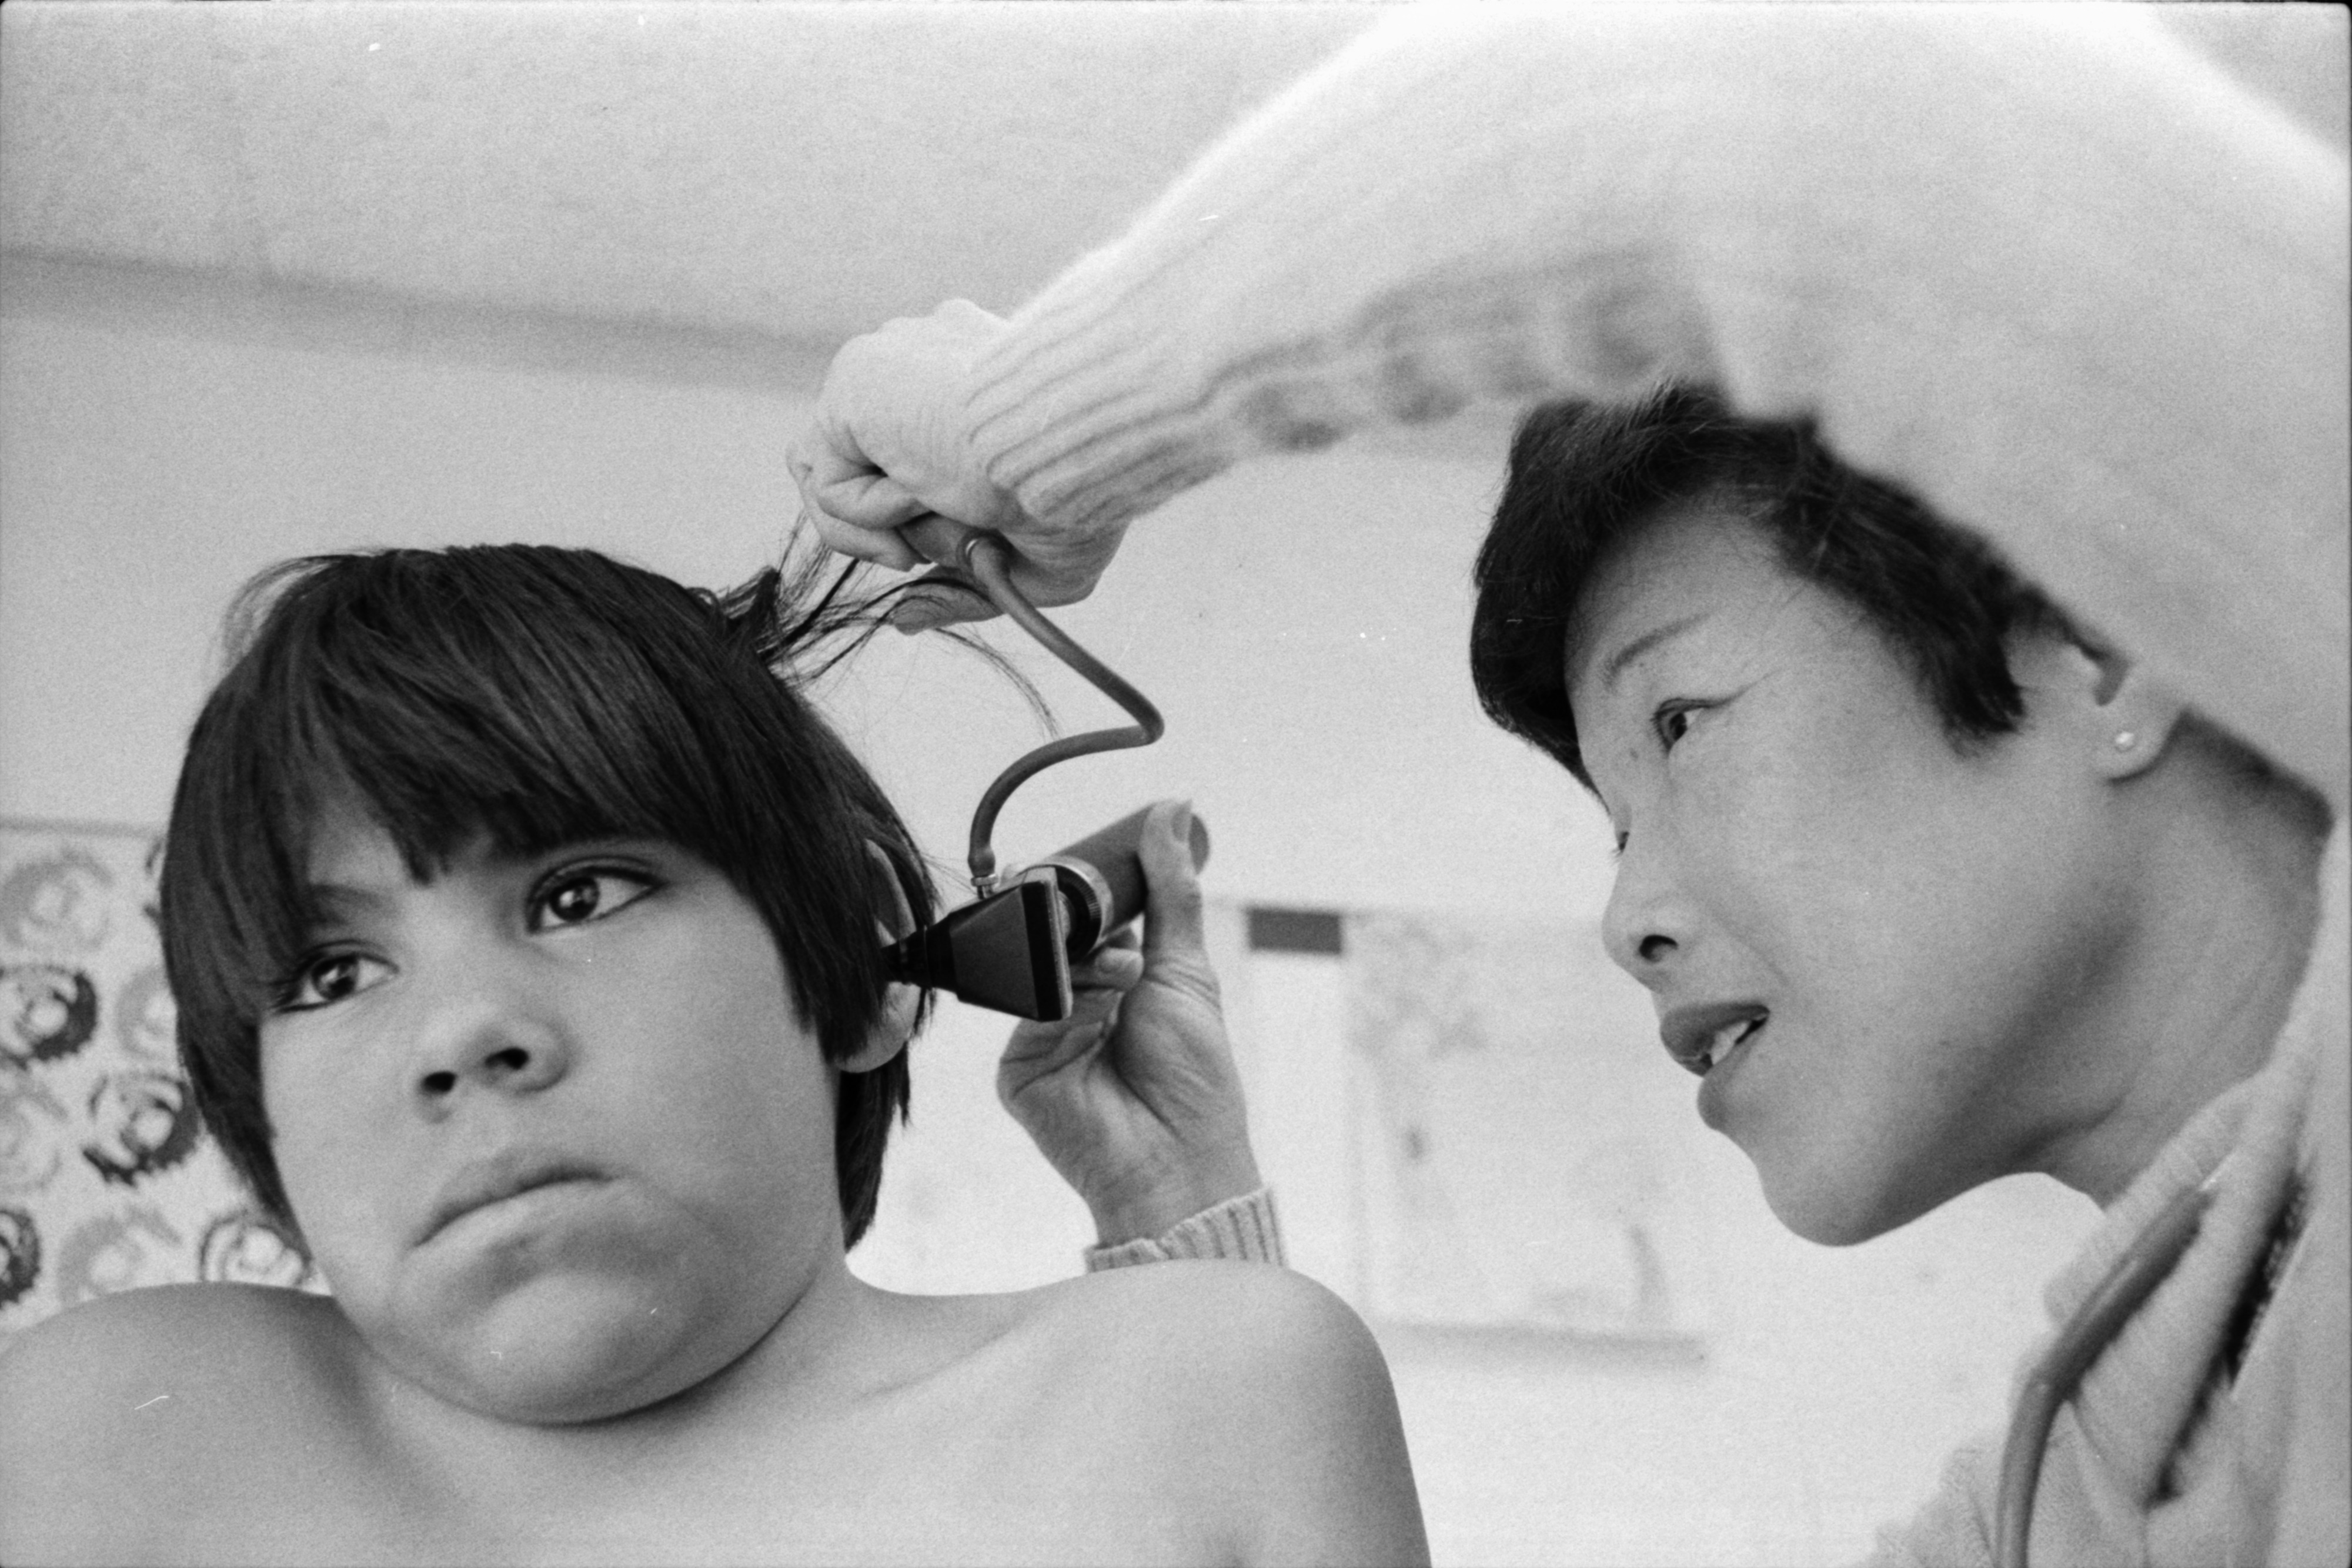 Ear Check at the Packard Community Clinic, January 1978 image